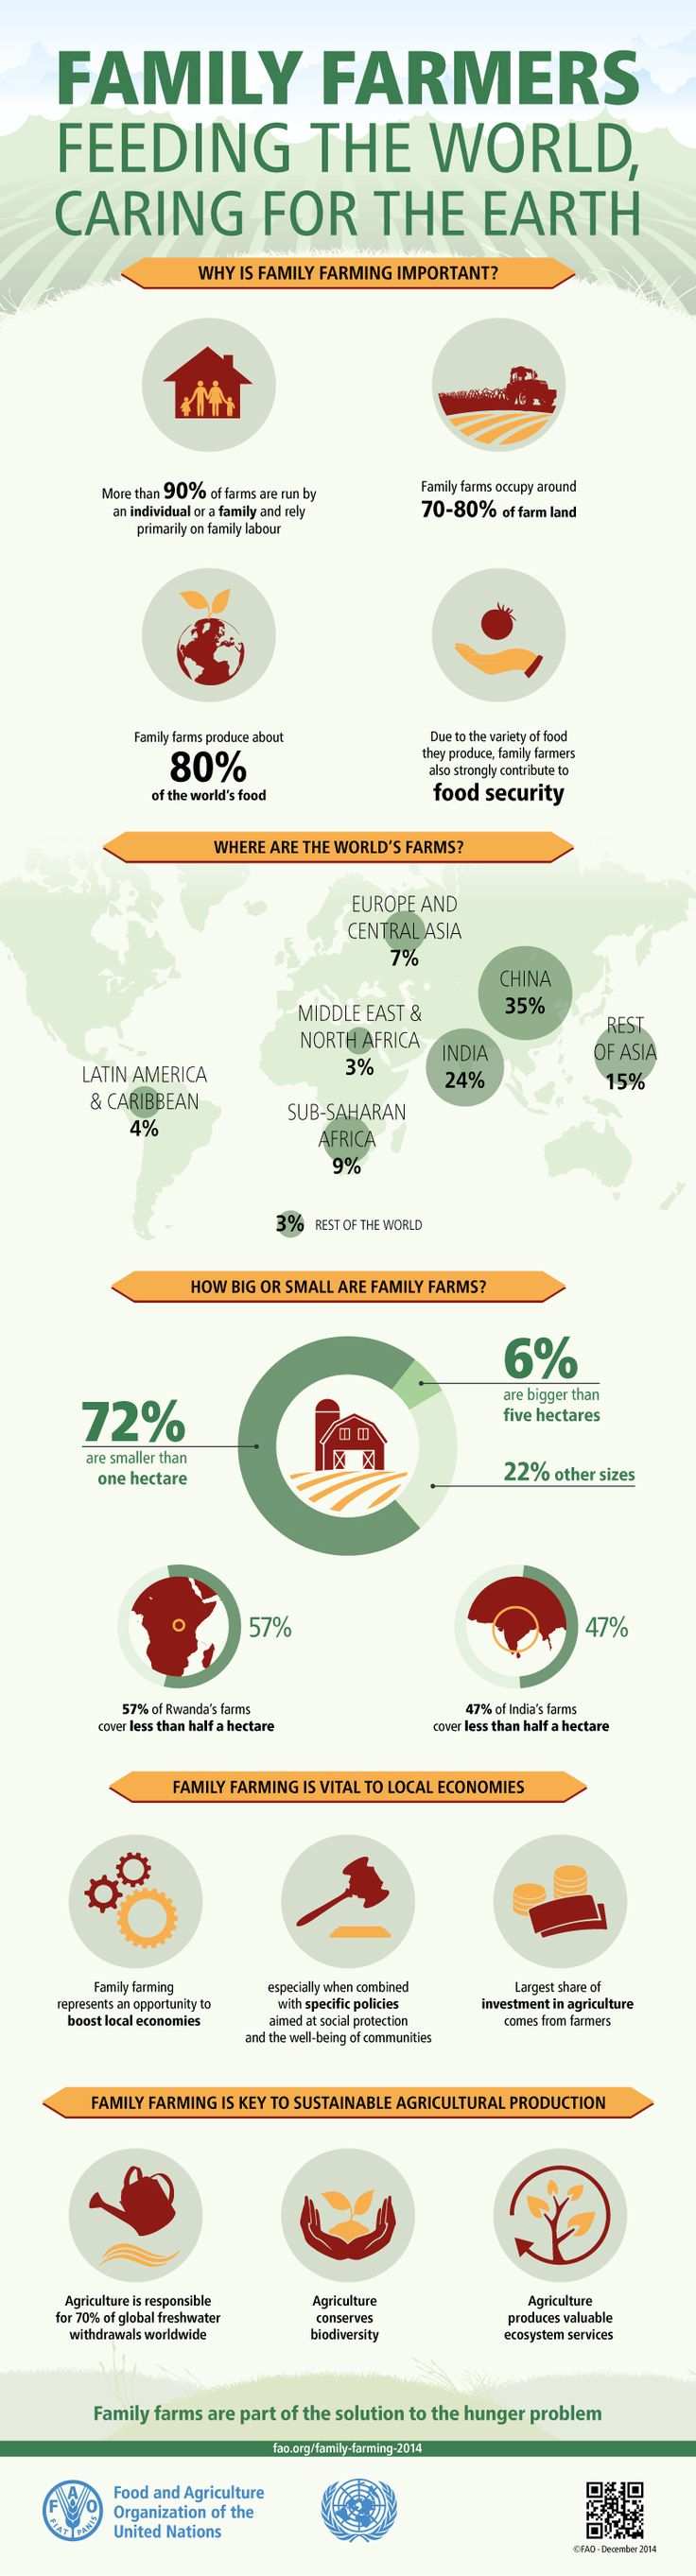 Family Farmers: Feeding the world, caring for the earth. Both in developing and developed countries, family farming is the predominant form of agriculture in the food production sector.